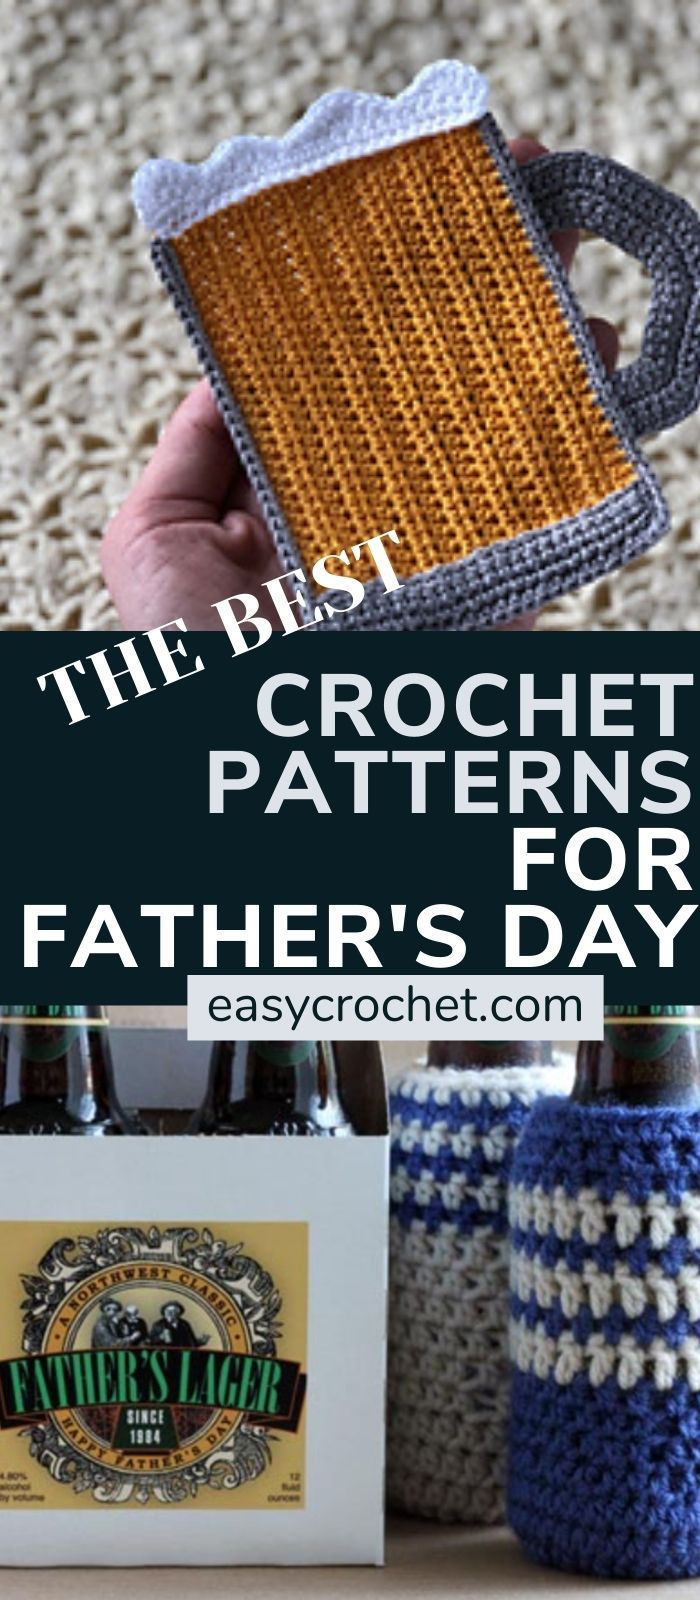 Crochet Pattern ideas for Father's Day